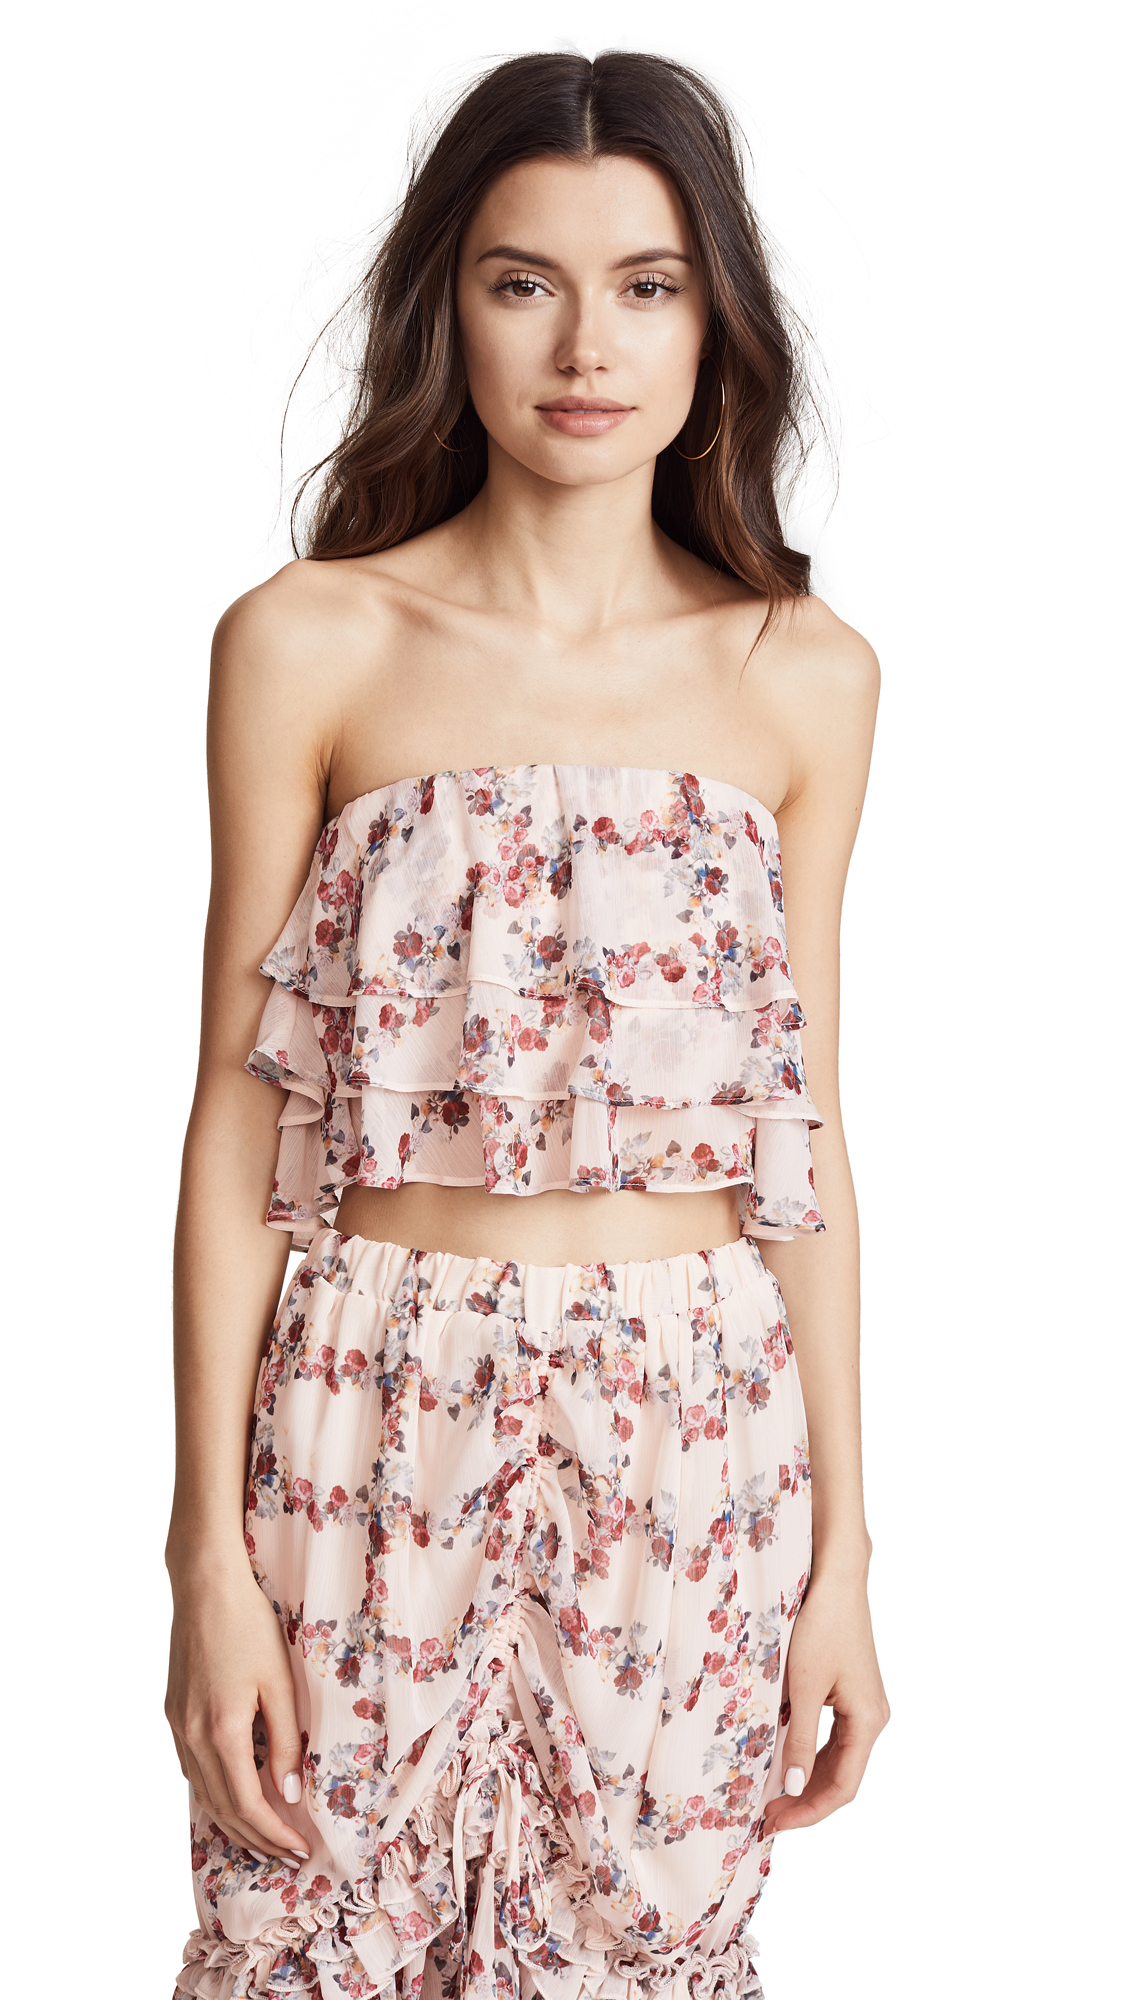 endless rose Ruffled Fence Crop Top In Fence Of Roses